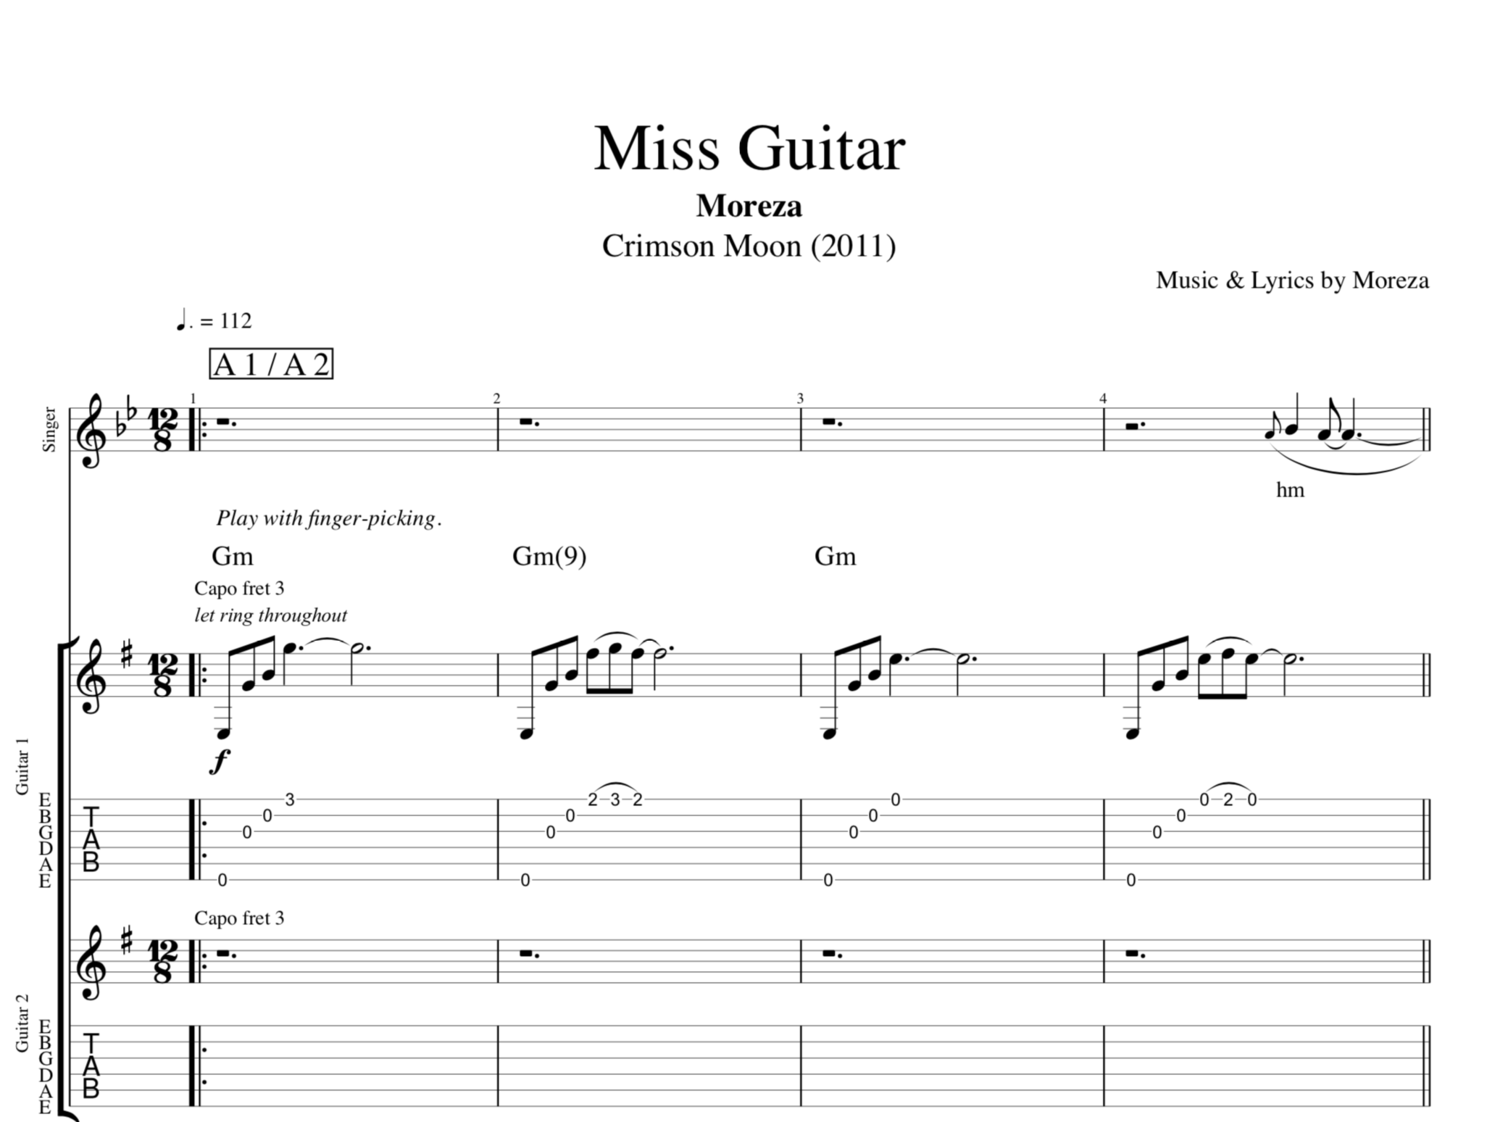 Miss Guitar By Moreza Guitars Vocal Sheet Musicscore Tab